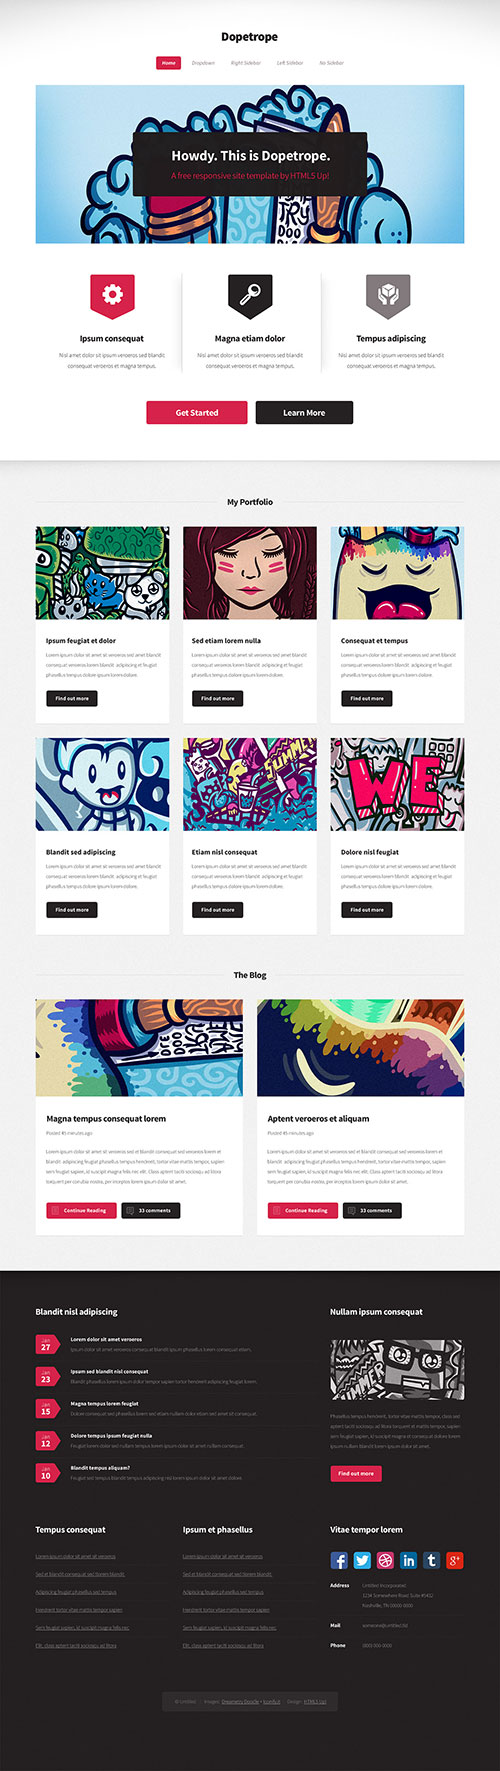 Dopetrope - Free Site Template